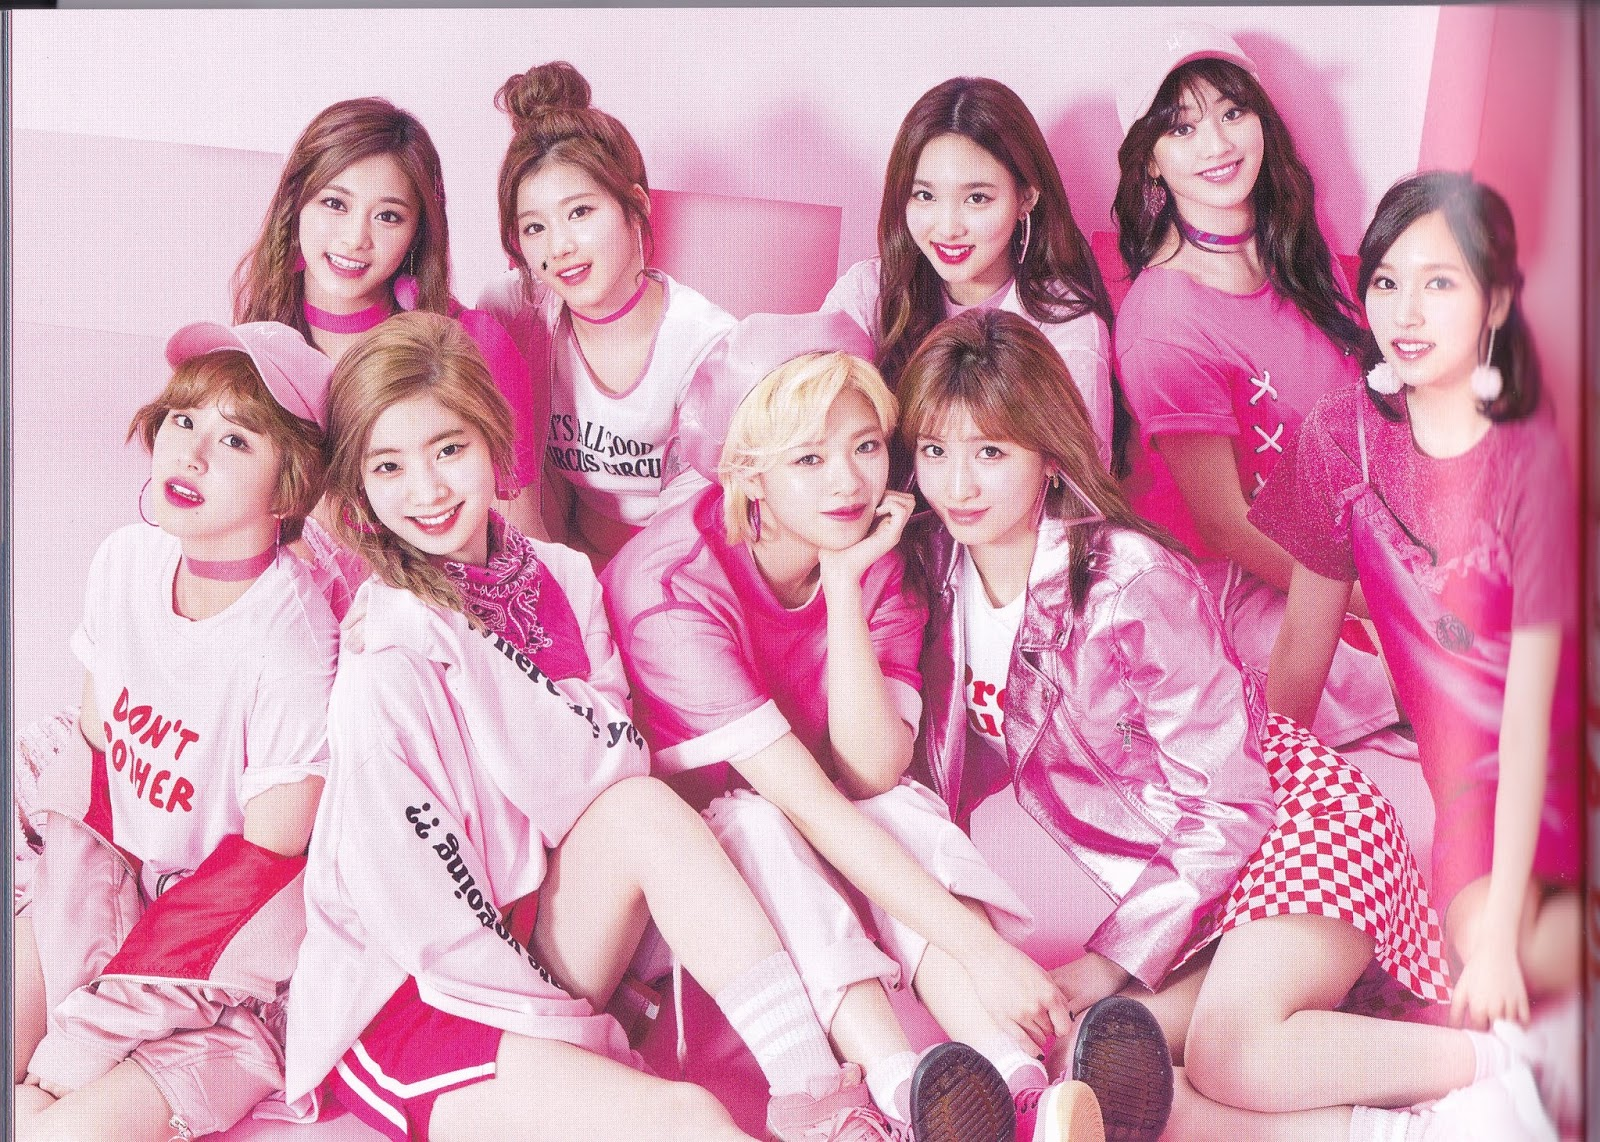 Photoshoot scans twice japan debut best album celebrity 99adf3449a47baaeecff07929a1f4401g stopboris Image collections